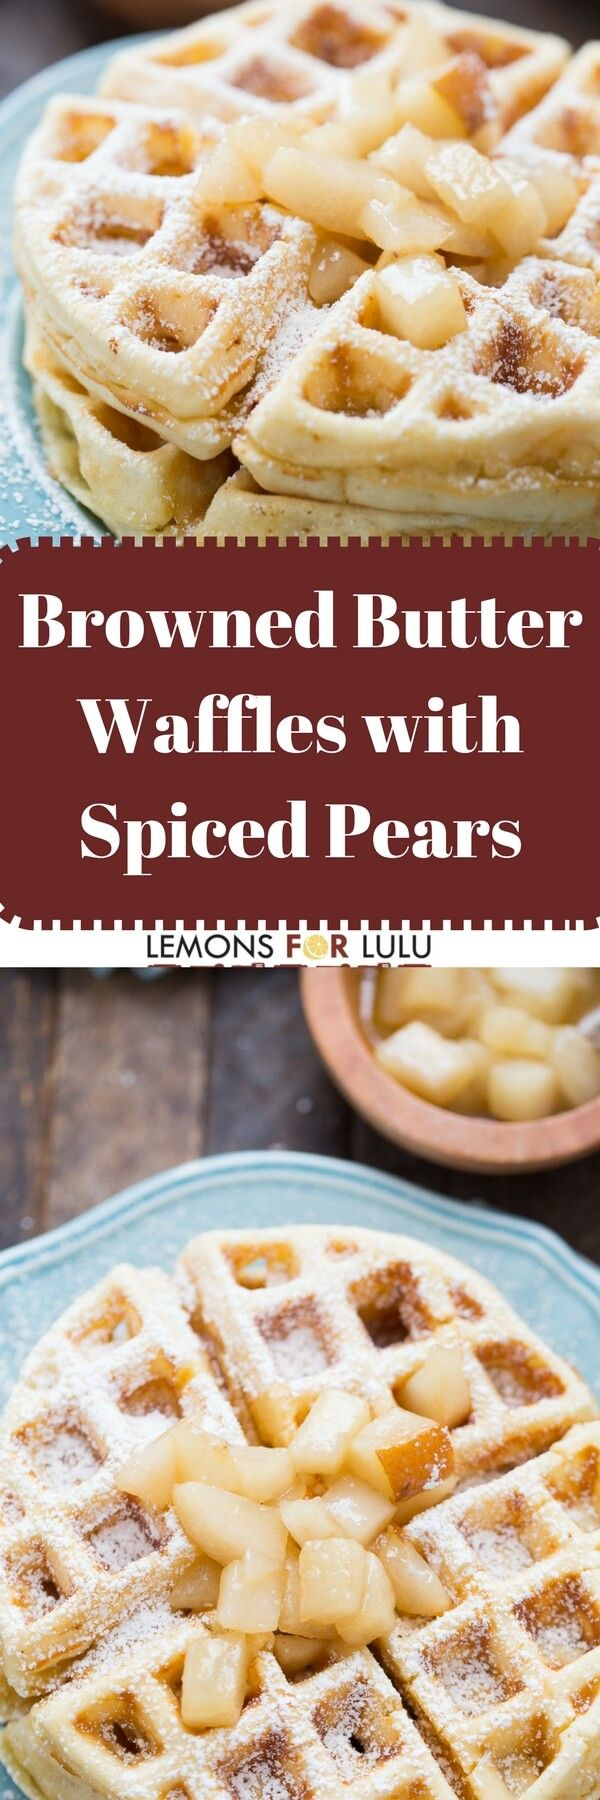 Browned Butter Waffles with Spiced Pears | Lemons For Lulu | Homemade waffles are so easy!  These browned butter waffles taste buttery and sweet, don't forget the spiced rum pear topping!